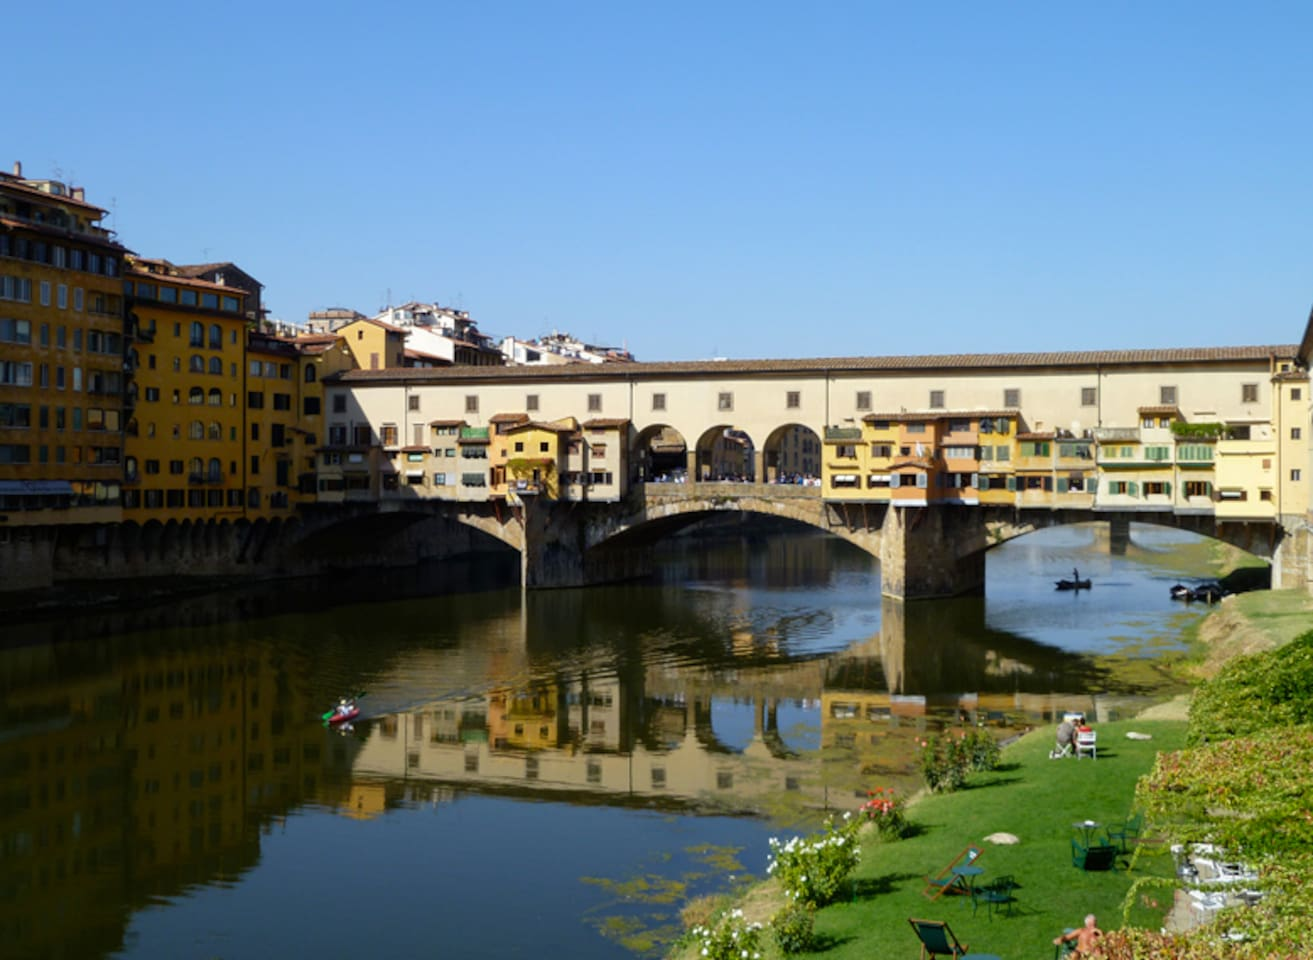 Apartment is steps away from the Pontevecchio, which is lovely day and night and has amazing jewelry stores.